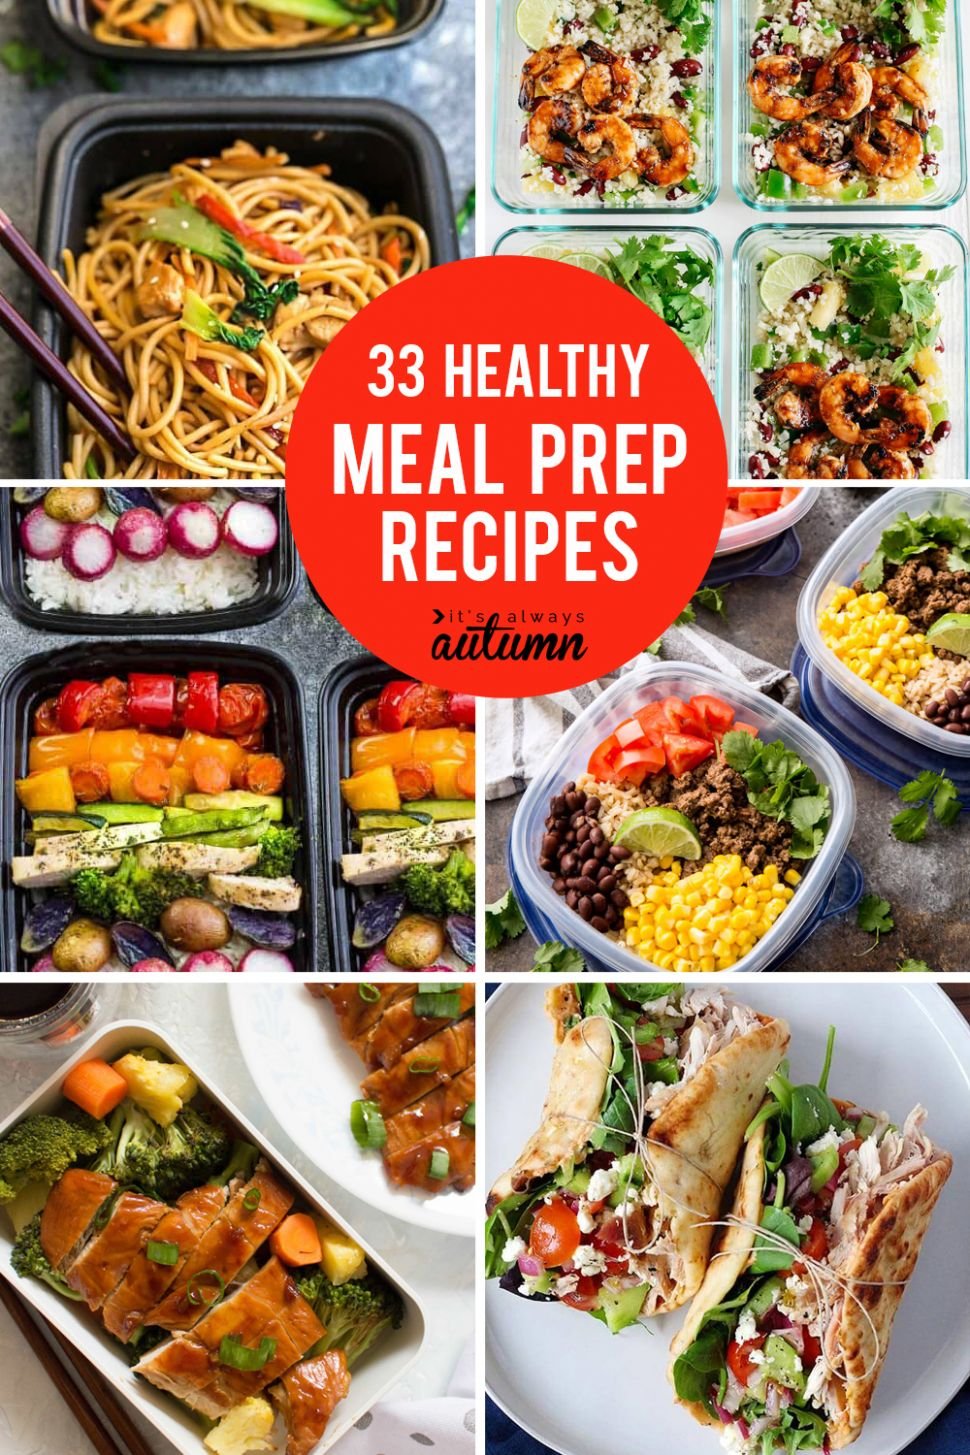 8 delicious meal prep recipes for healthy lunches that taste ..